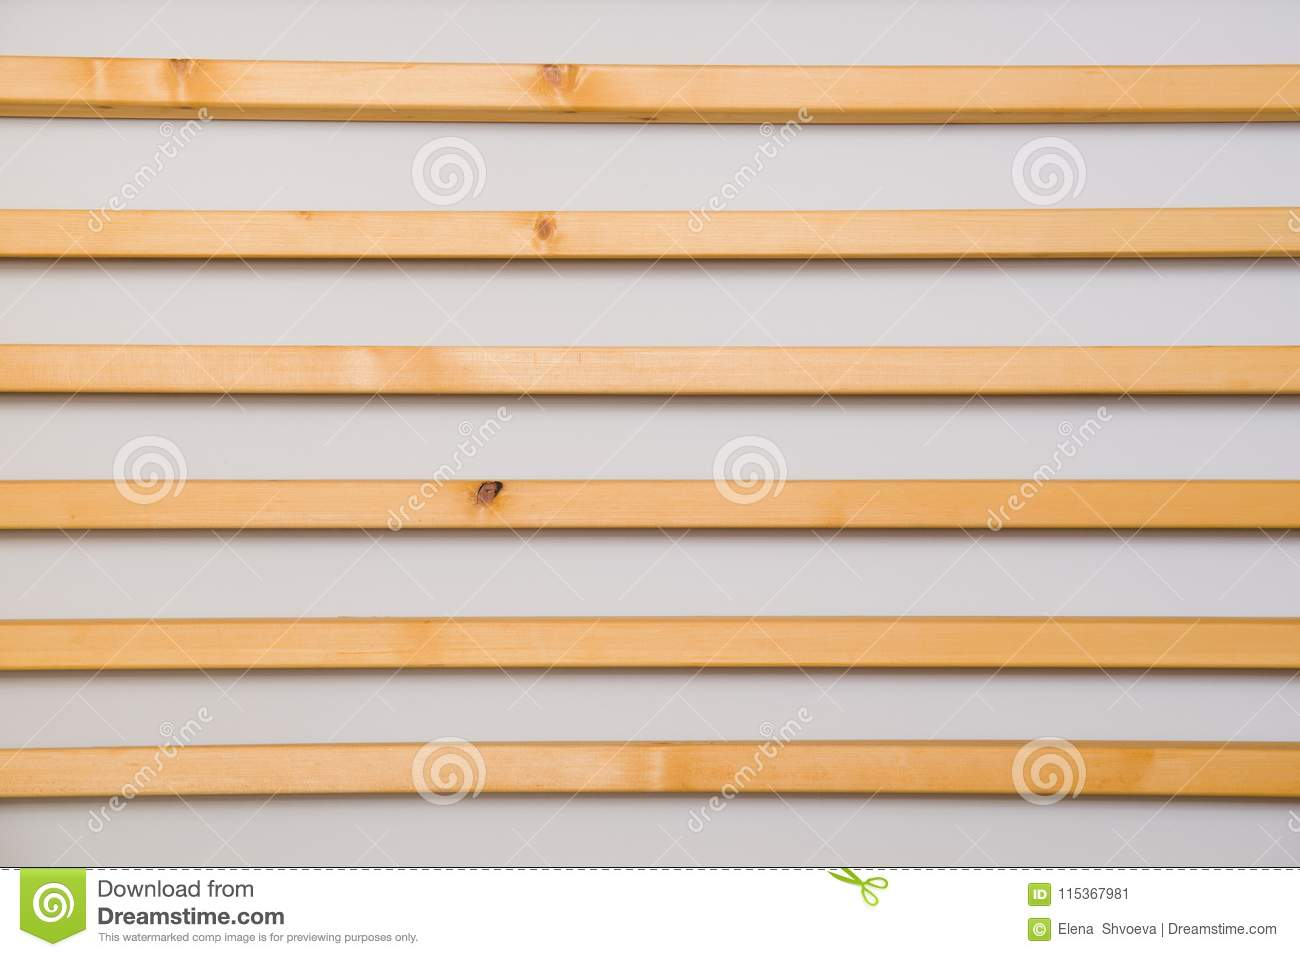 Wooden horizontal slats batten on a light gray wall background. Interior detail, texture, background. The concept of minimalism an